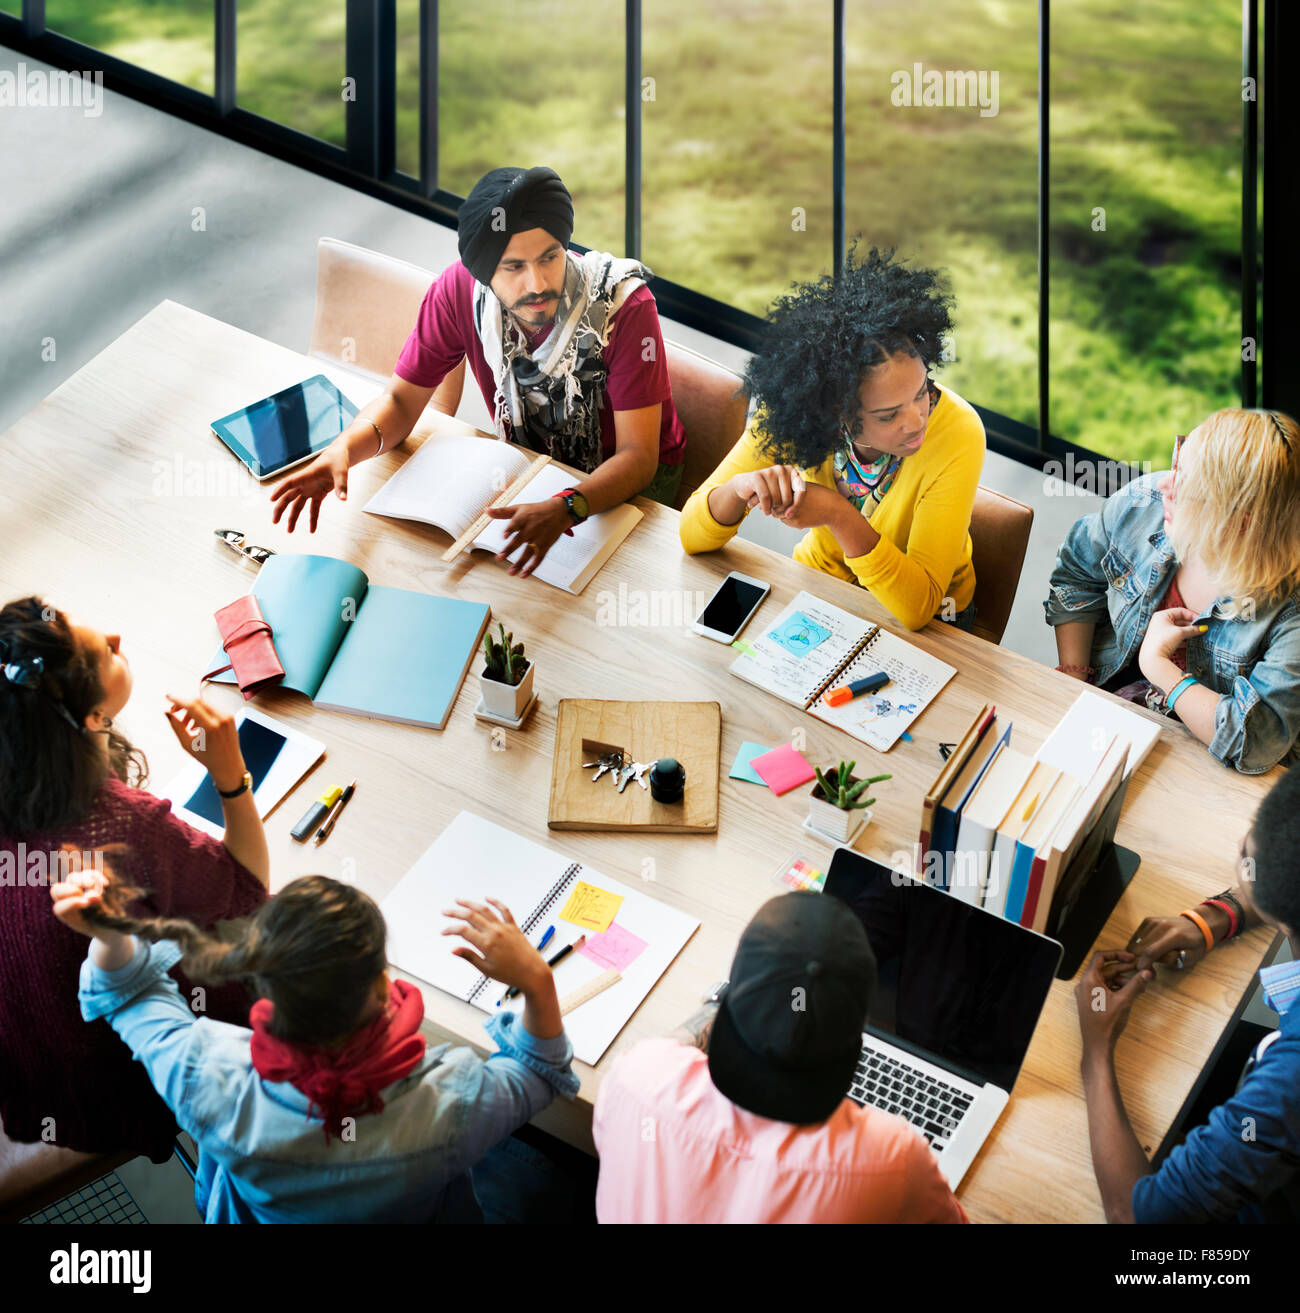 Diverse Group People Working Together Concept Stock Photo 91086295